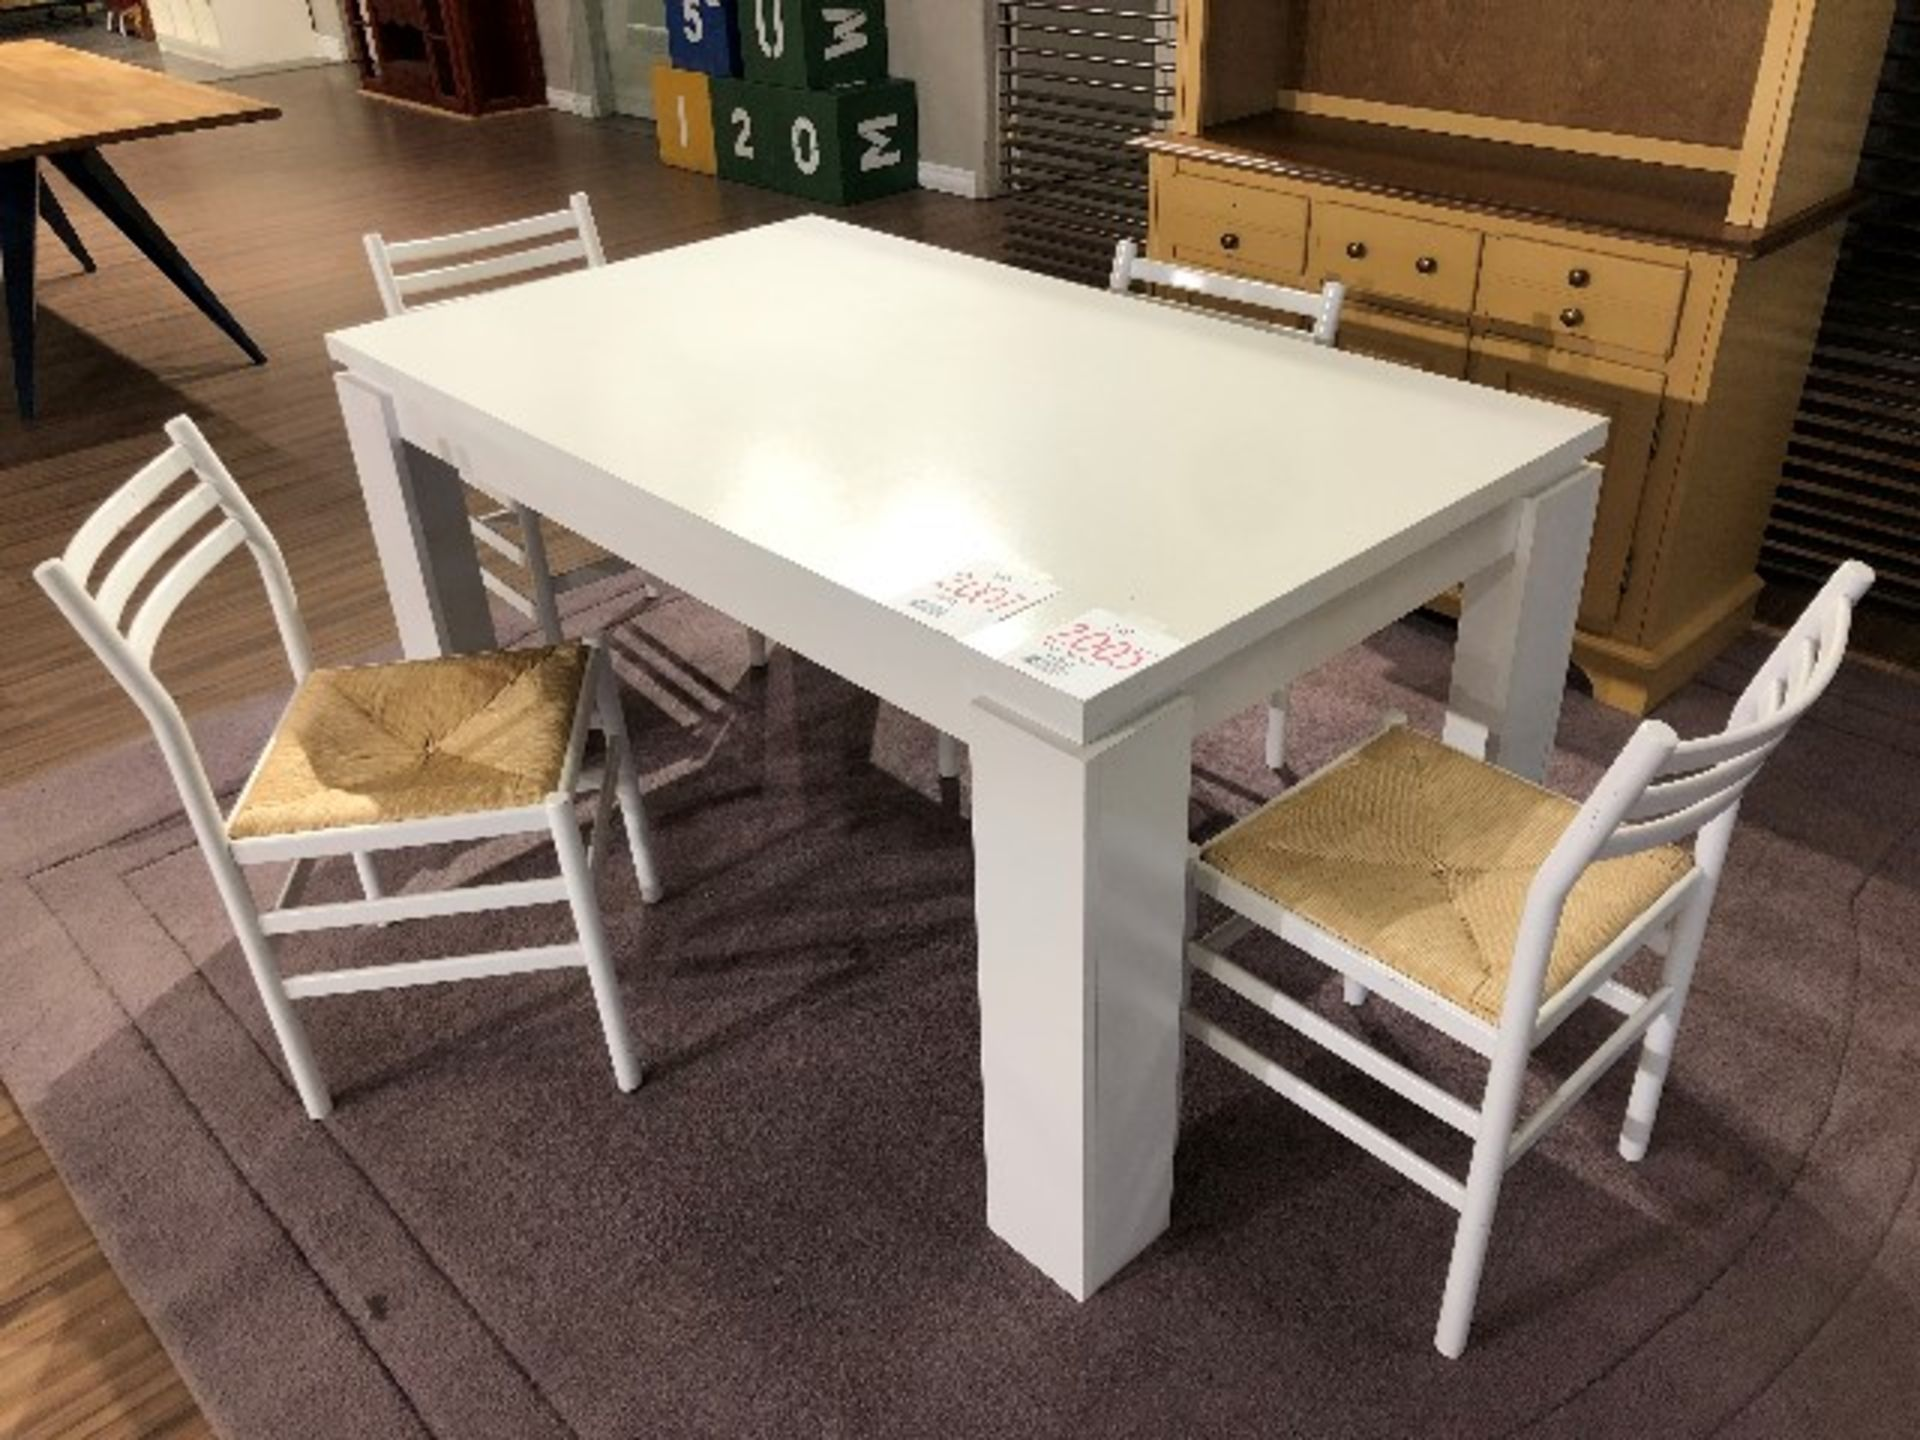 """Lot 2005 - Dining set, table & 4 chairs, 59""""x39"""", 5 pcs (Lot)"""